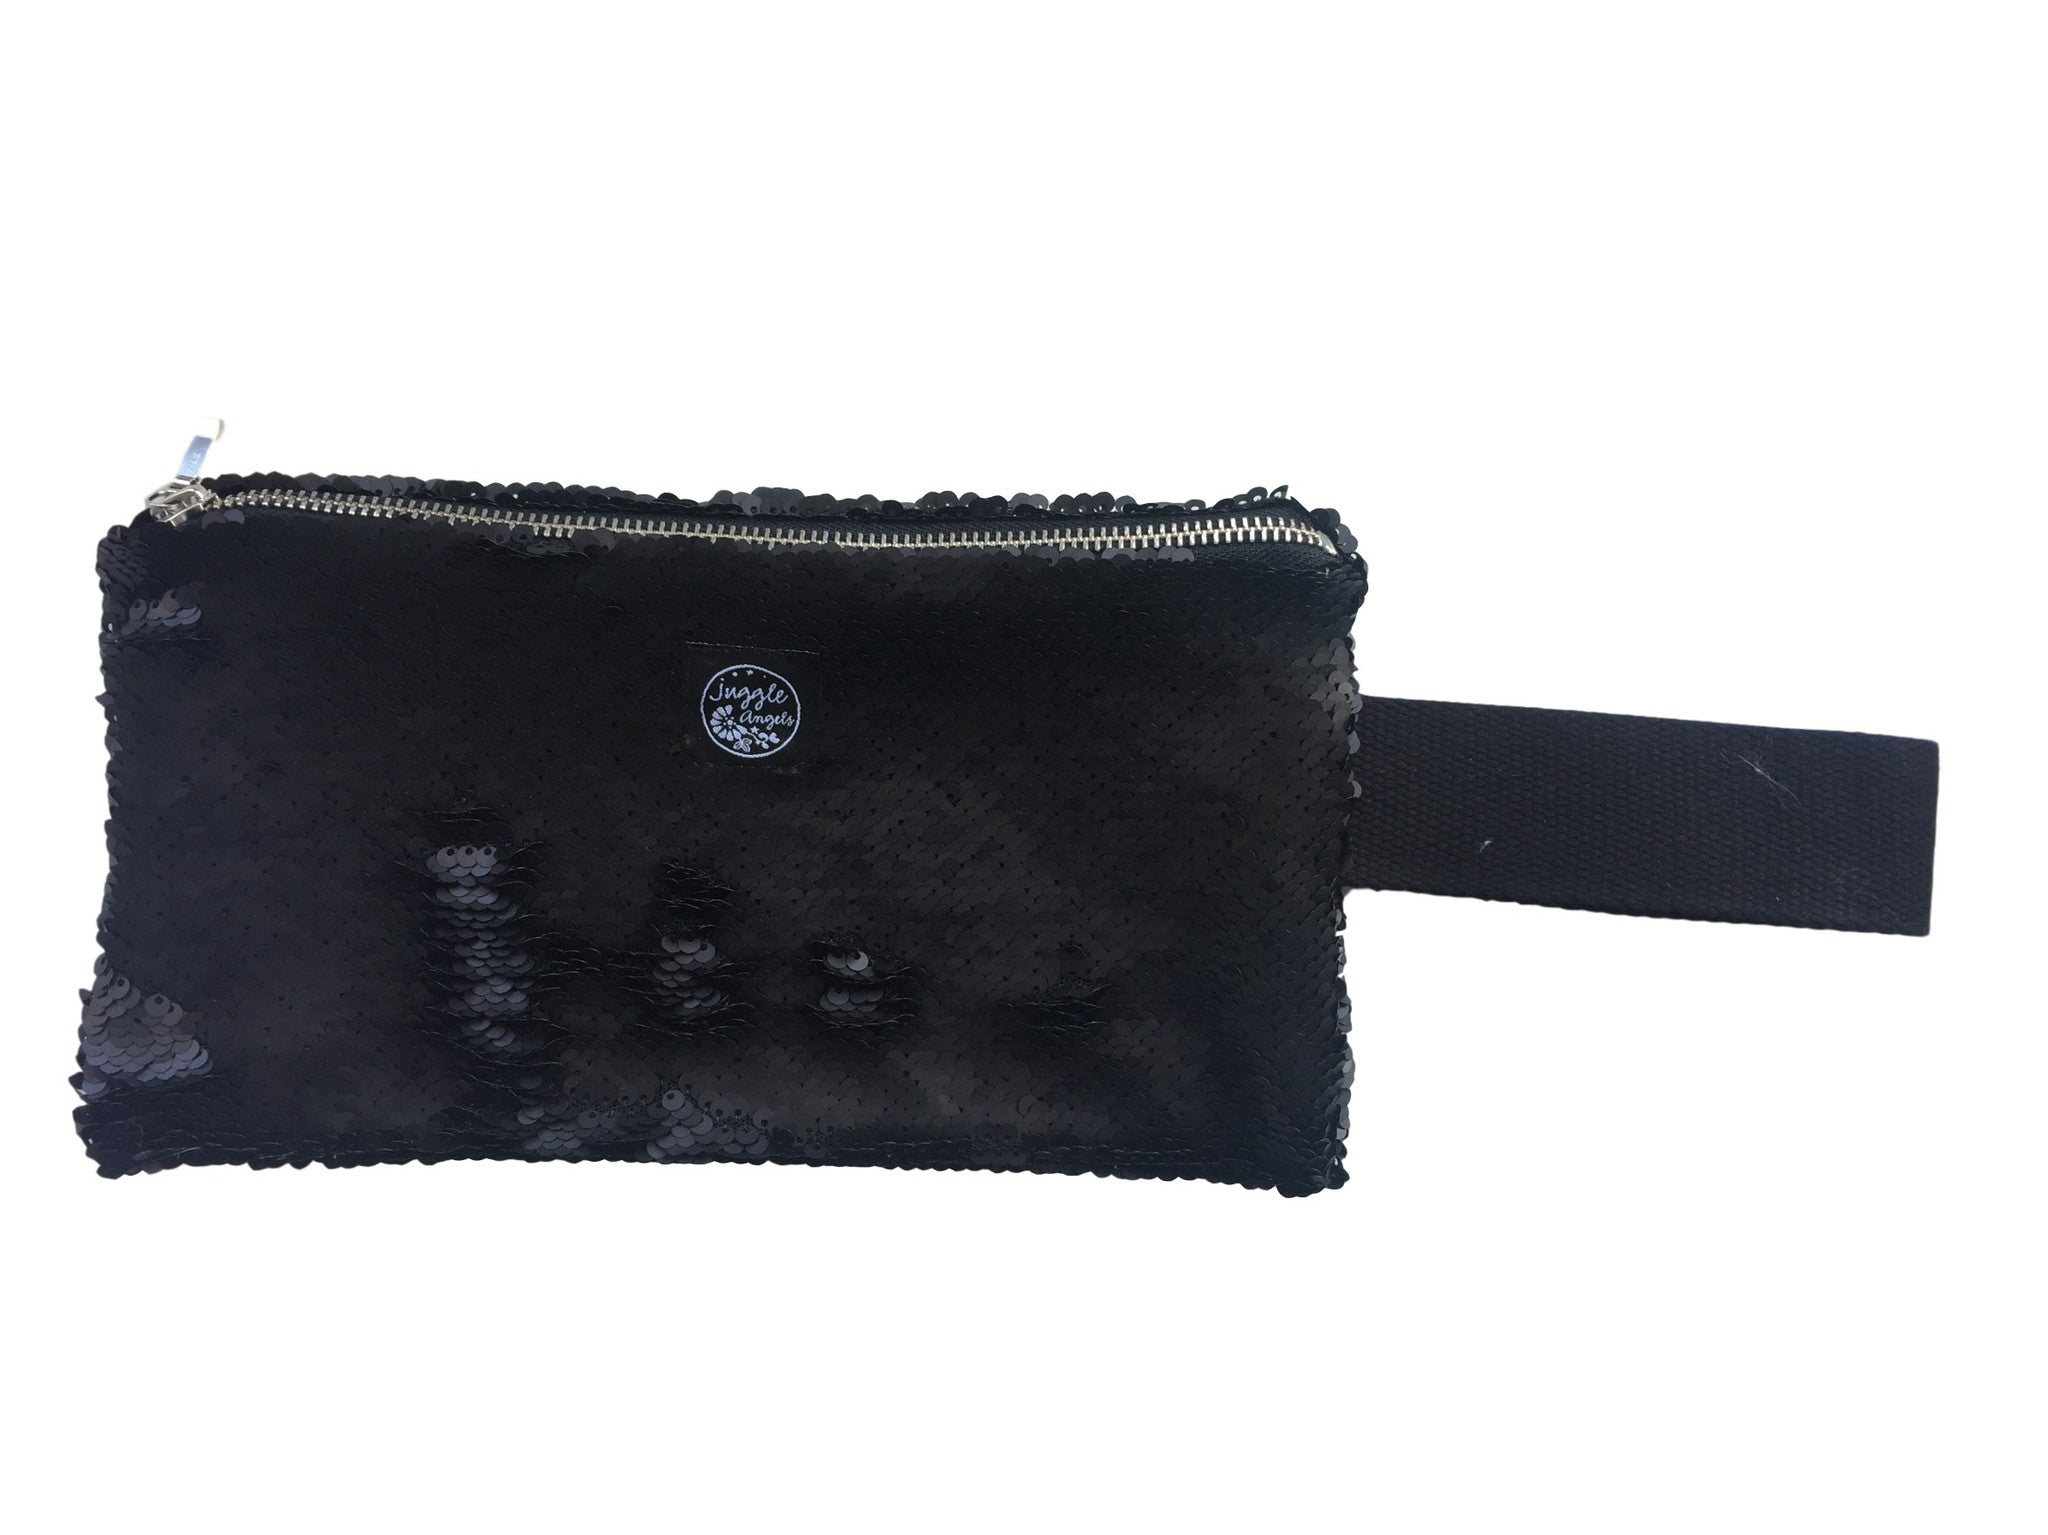 Black Sequins Clutch Bag